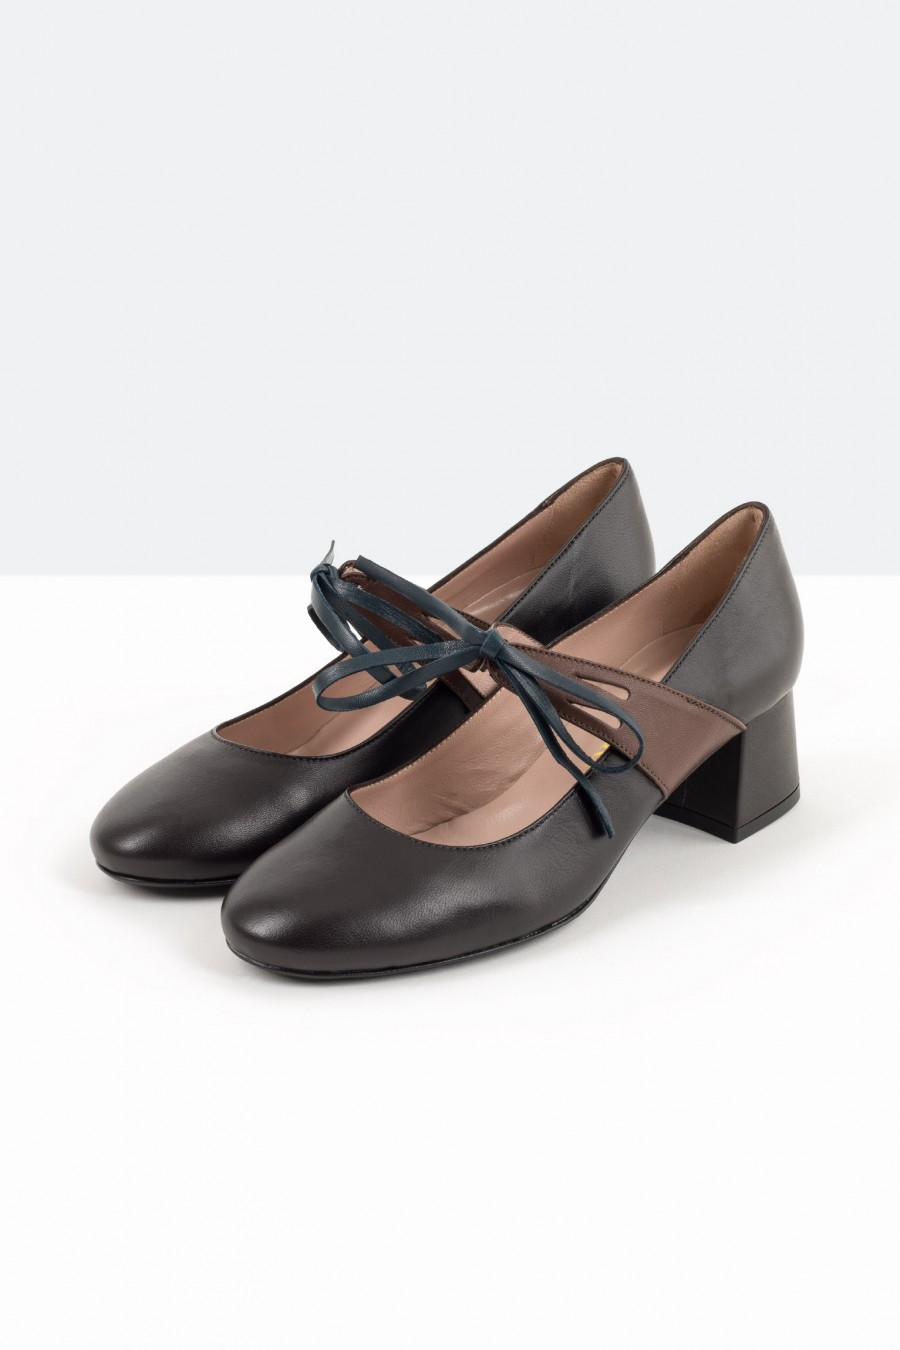 Black leather bebè shoes with brown straps